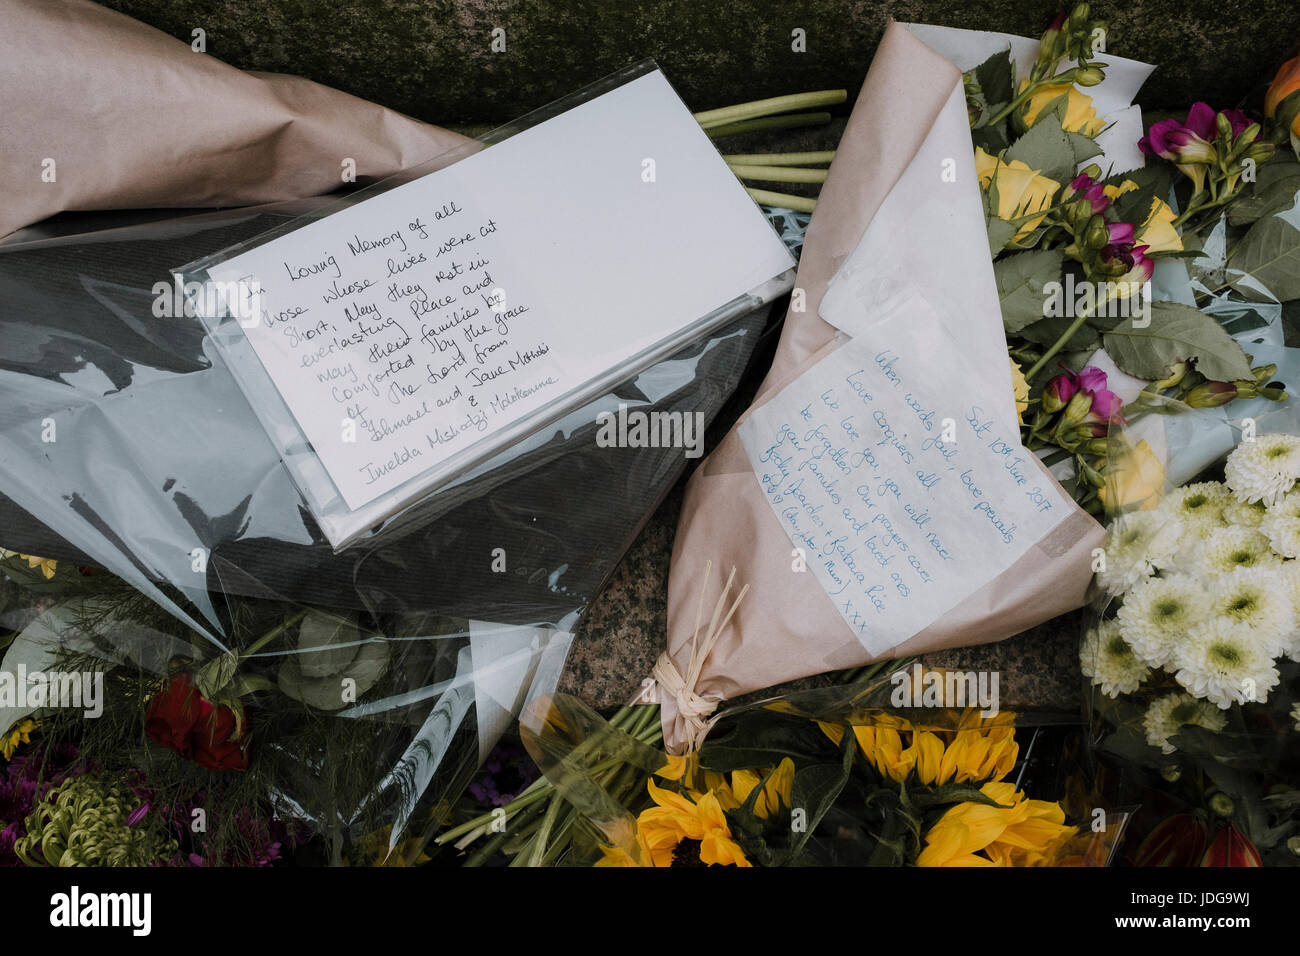 Memorials left at St Ann's Square for the victims of the Manchester Arena terror attack on 22nd May 2017 and - Stock Image